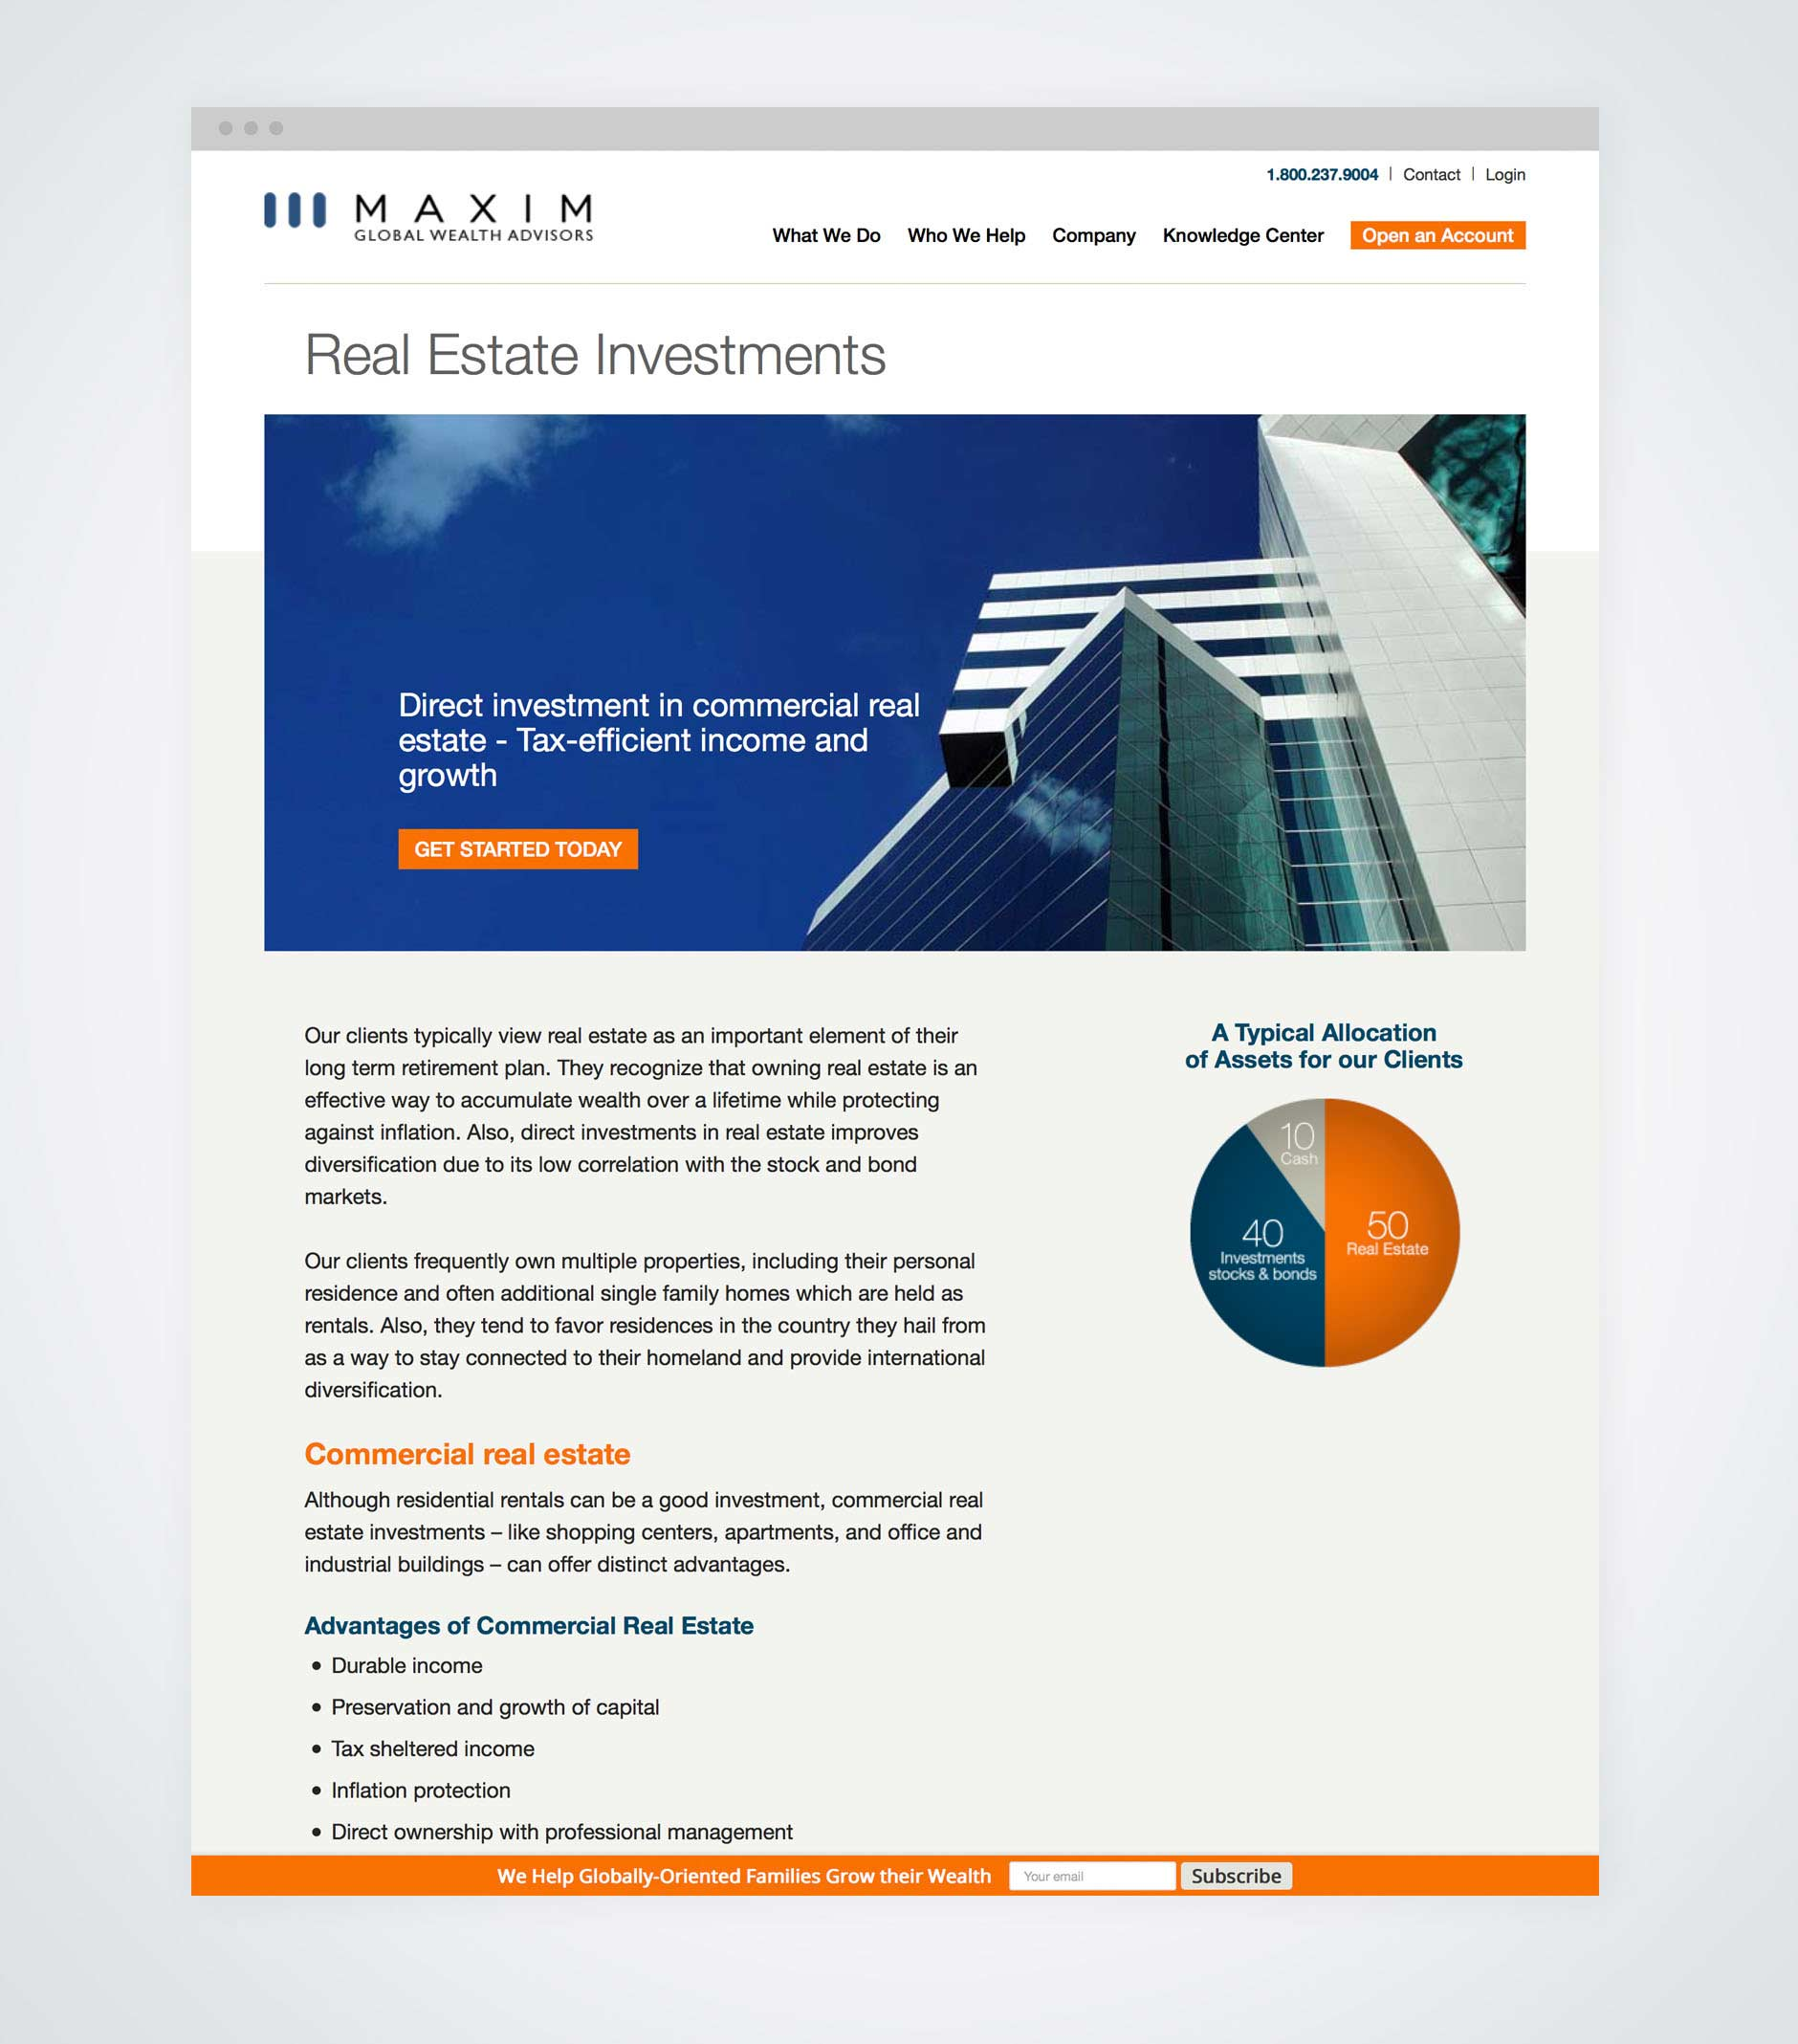 Maxim Global Wealth Advisors Website